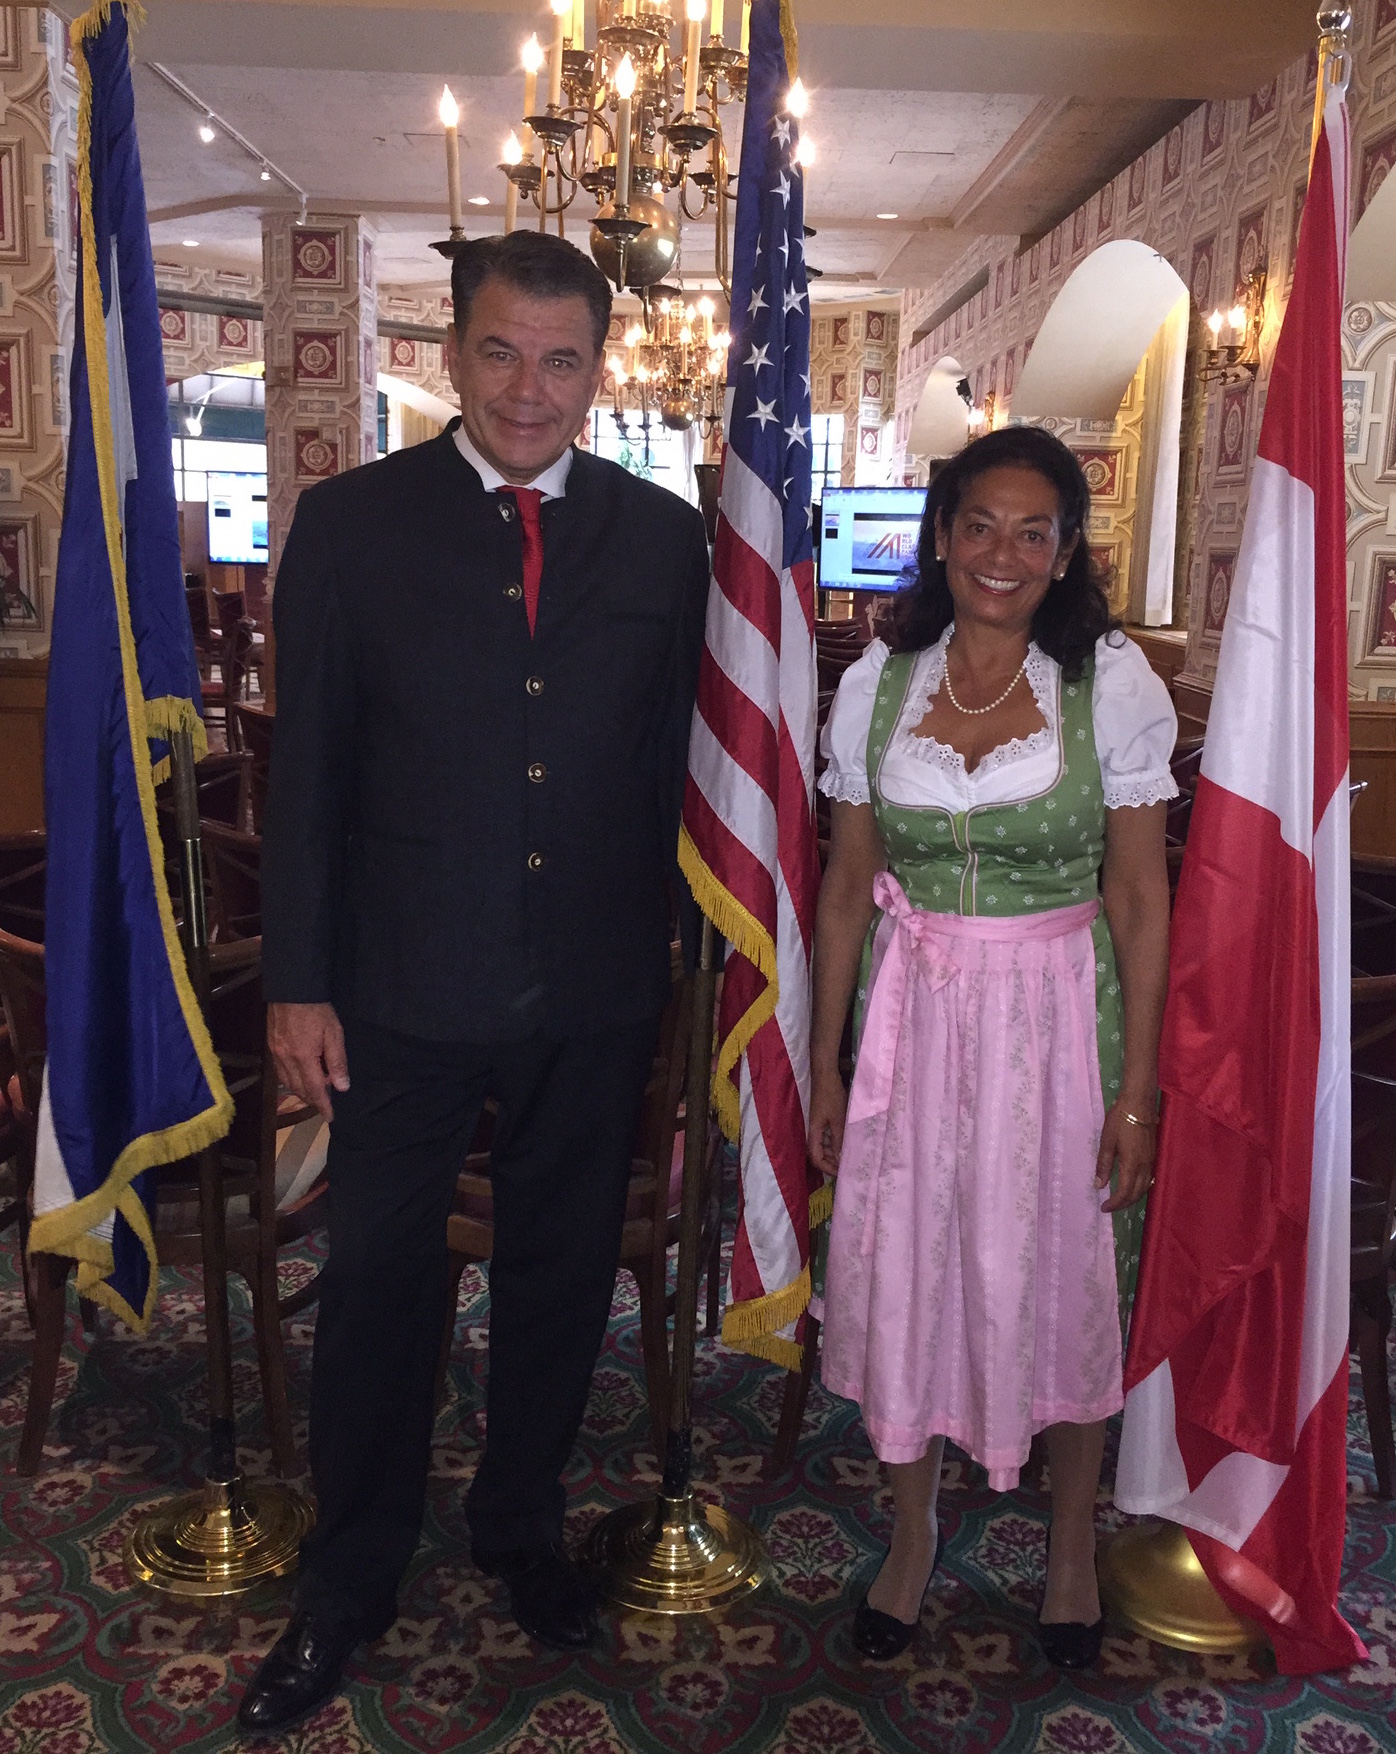 Austrian Honorary Consul  Hikmet Ersek  with his wife, Austrian Honorary Vice Consul  Dr. Nayantara Ghosh-Ersek . Mr. Ersek is President, Chief Executive Officer and Director of The Western Union Company. Ms. Ghosh-Ersek is a management consultant and trainer.